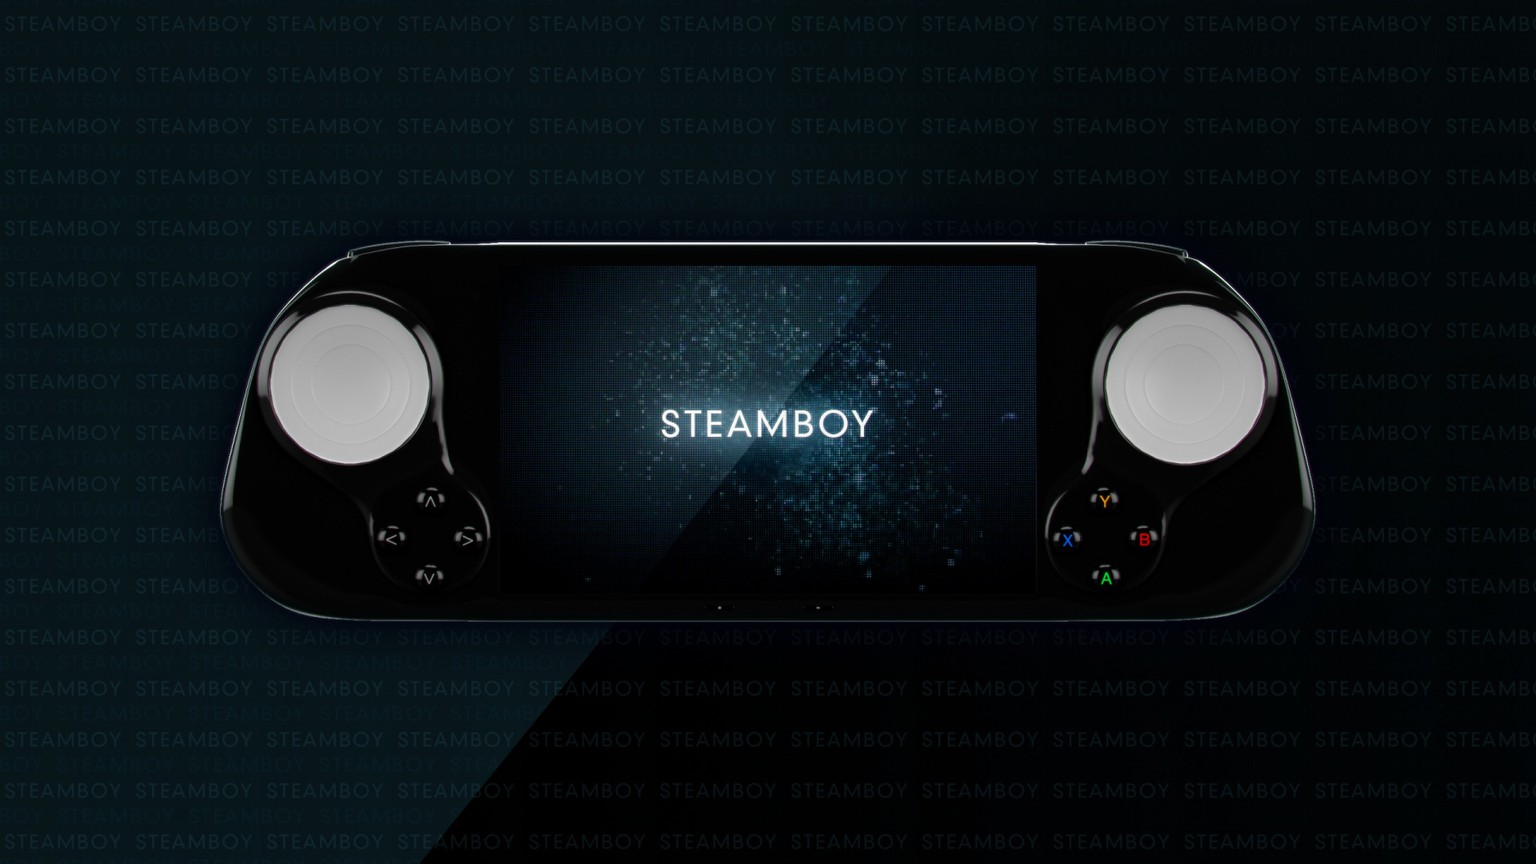 Steamboy, Handheld